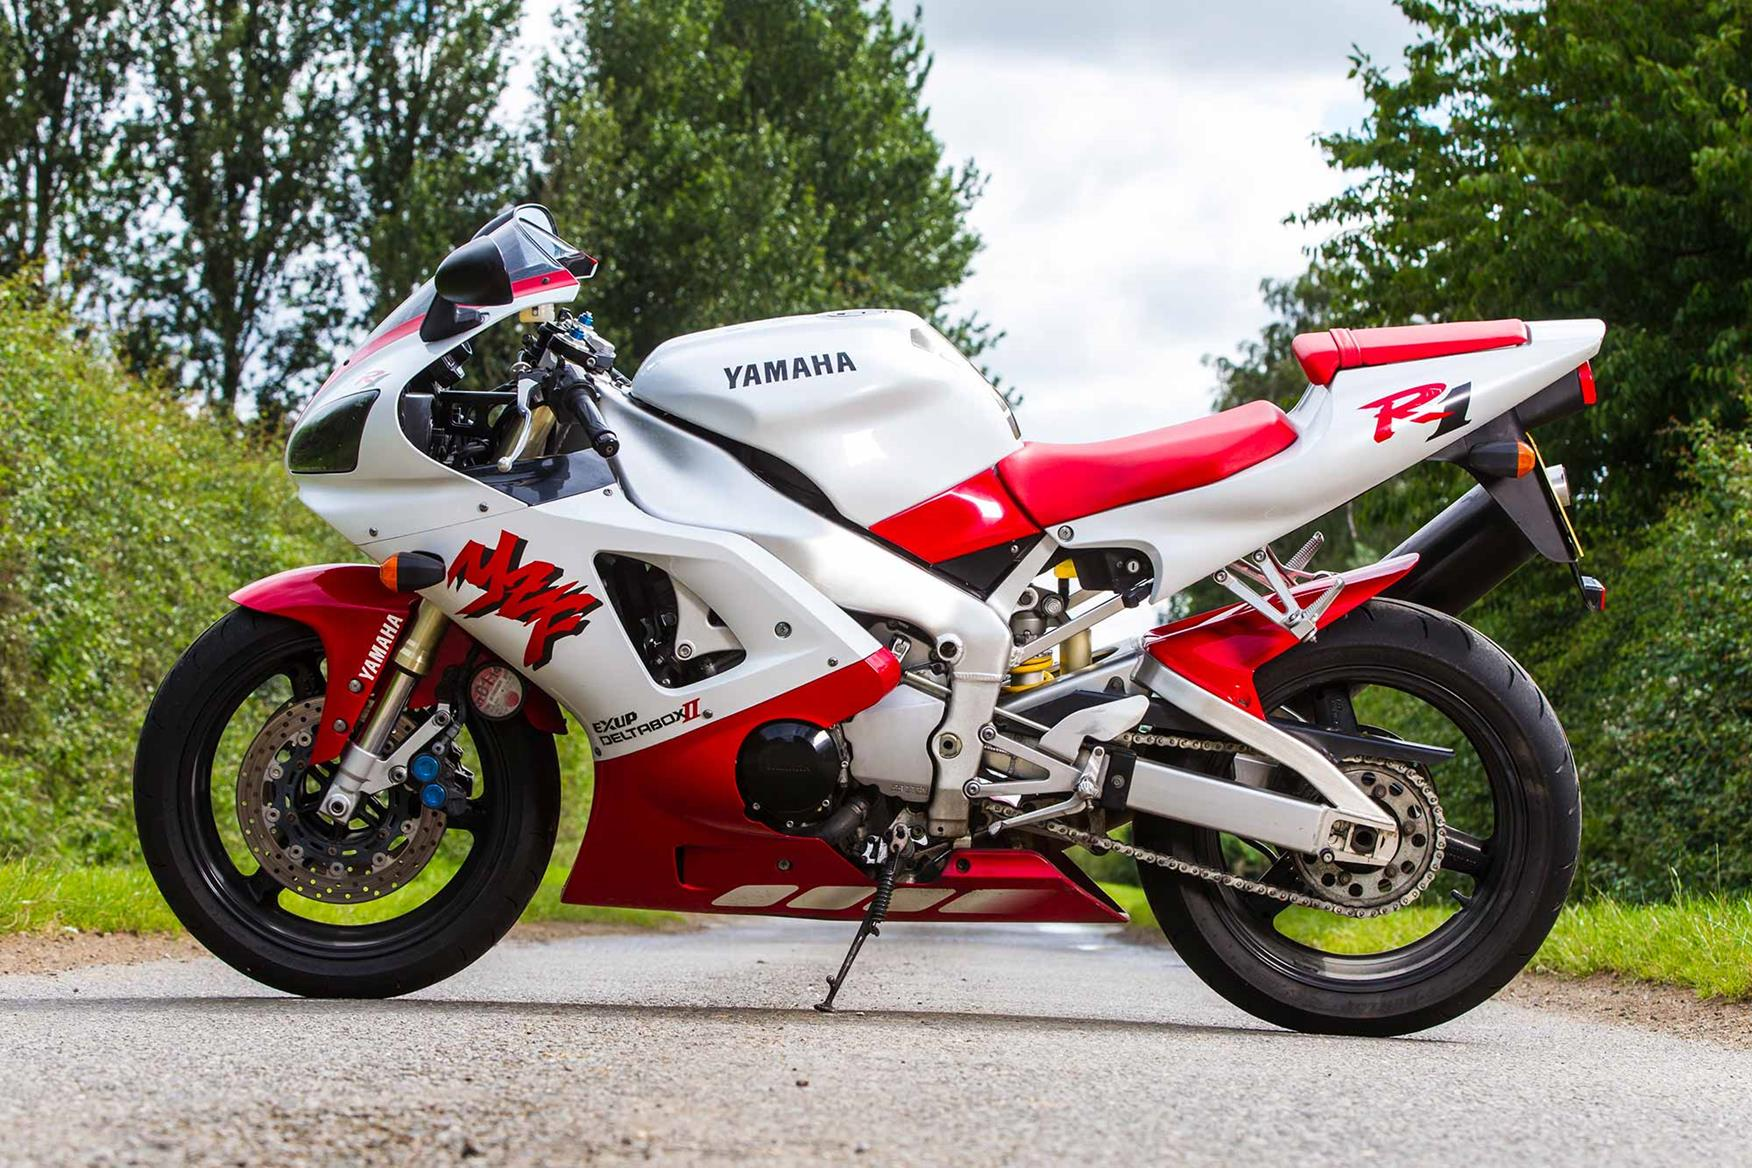 The original - and some would say best - Yamaha R1